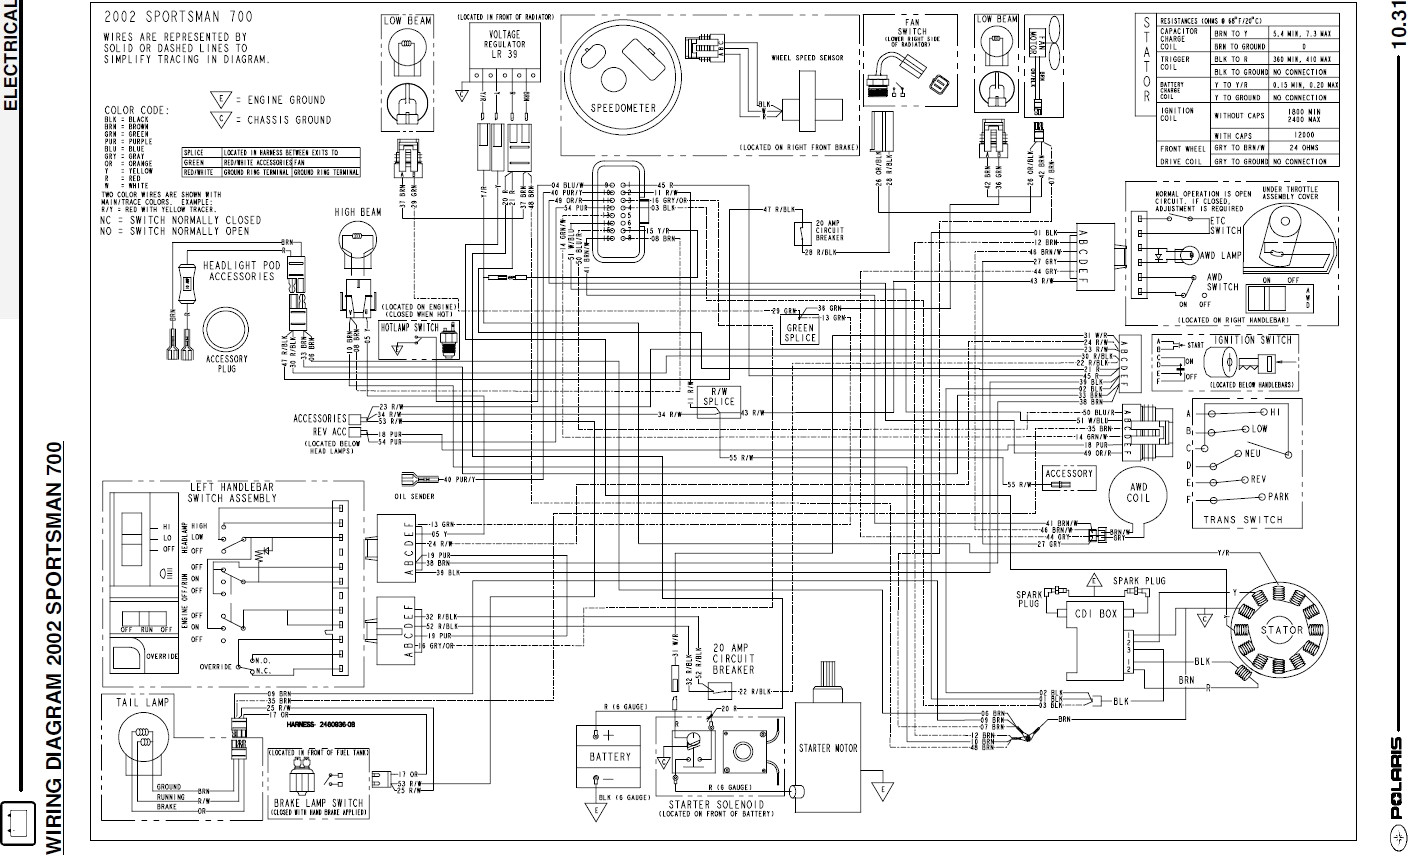 Wire Diagram 2003 Honda Aquatrax Wiring Library Schematic Detailed On Of This Motorcyclethis Polaris Pwc Images Gallery